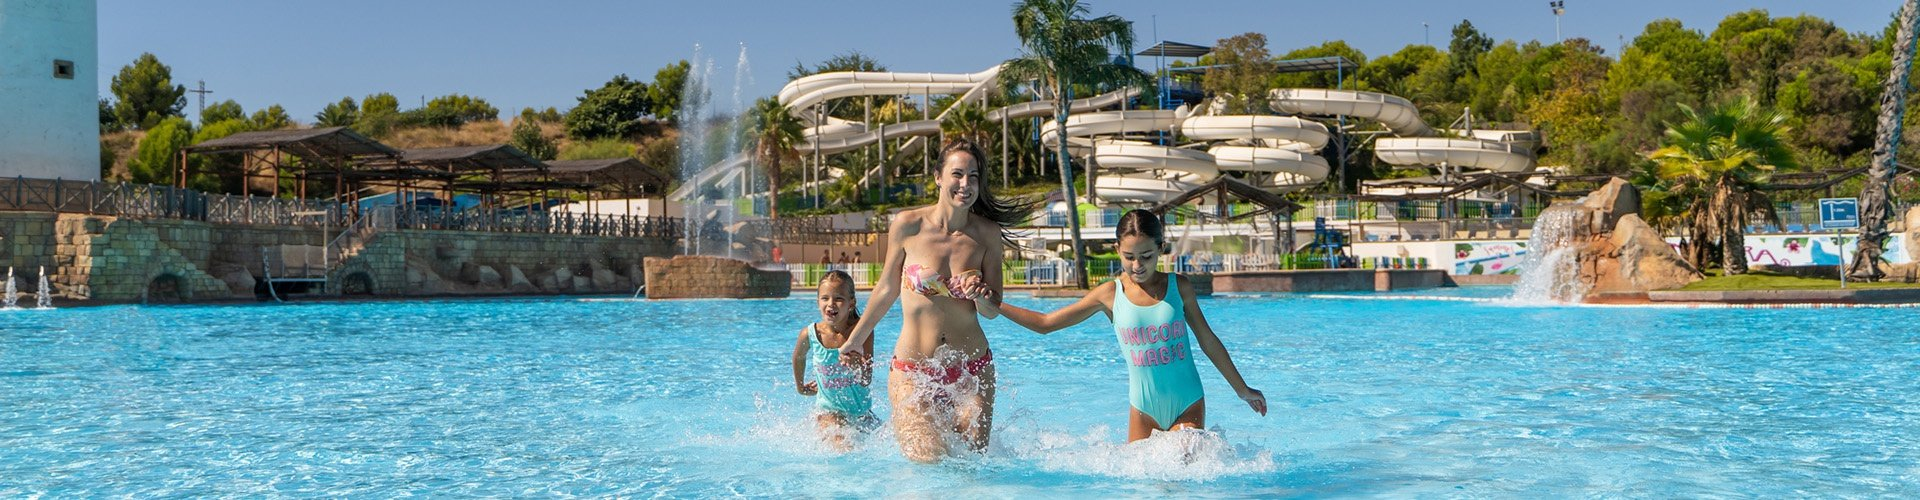 Magic Natura Animal, Waterpark & Polynesian Resort - Benidorm -